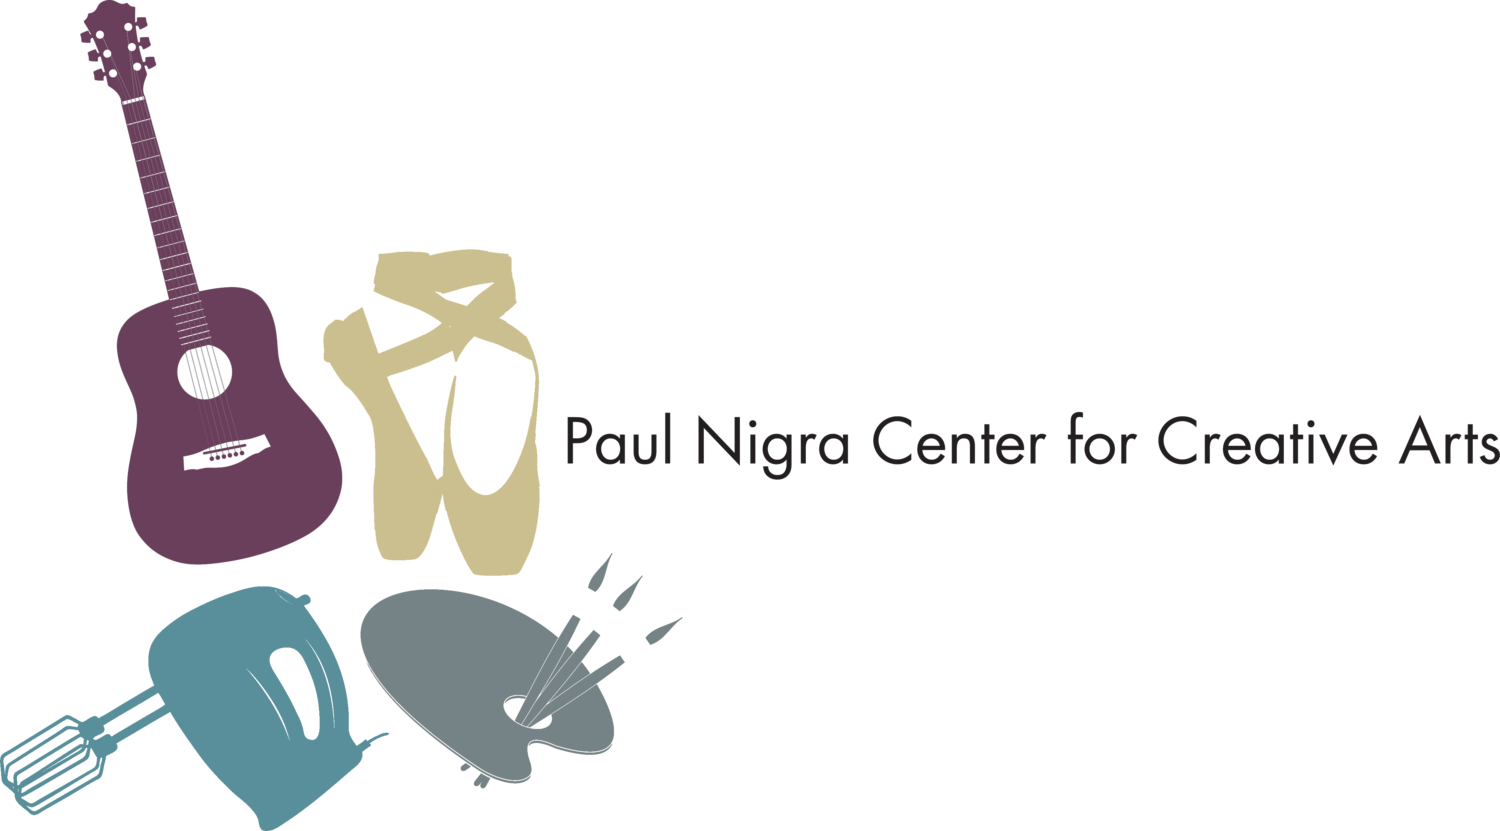 Paul Nigra Center for Creative Arts